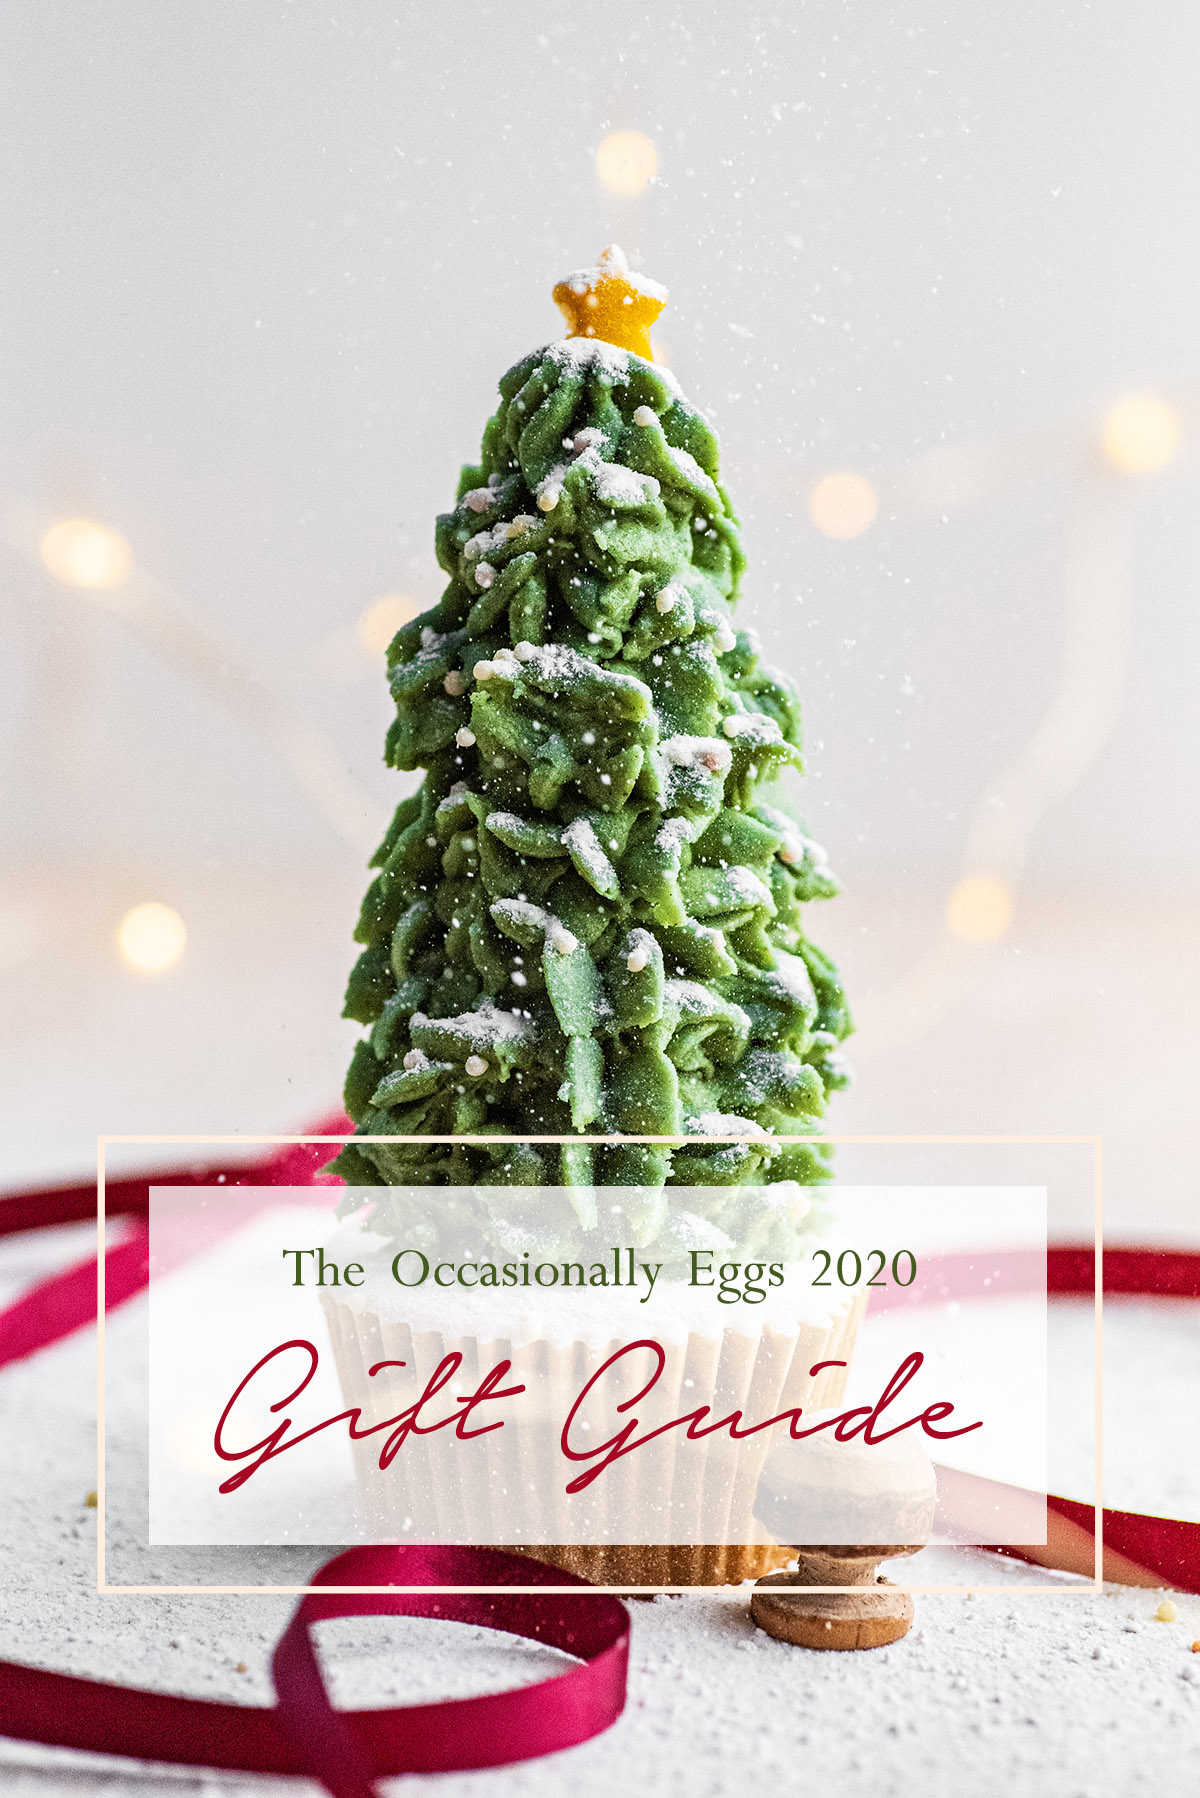 """A buttercream tree cupcake with text overlay stating """"The Occasionally Eggs 2020 Gift Guide""""."""